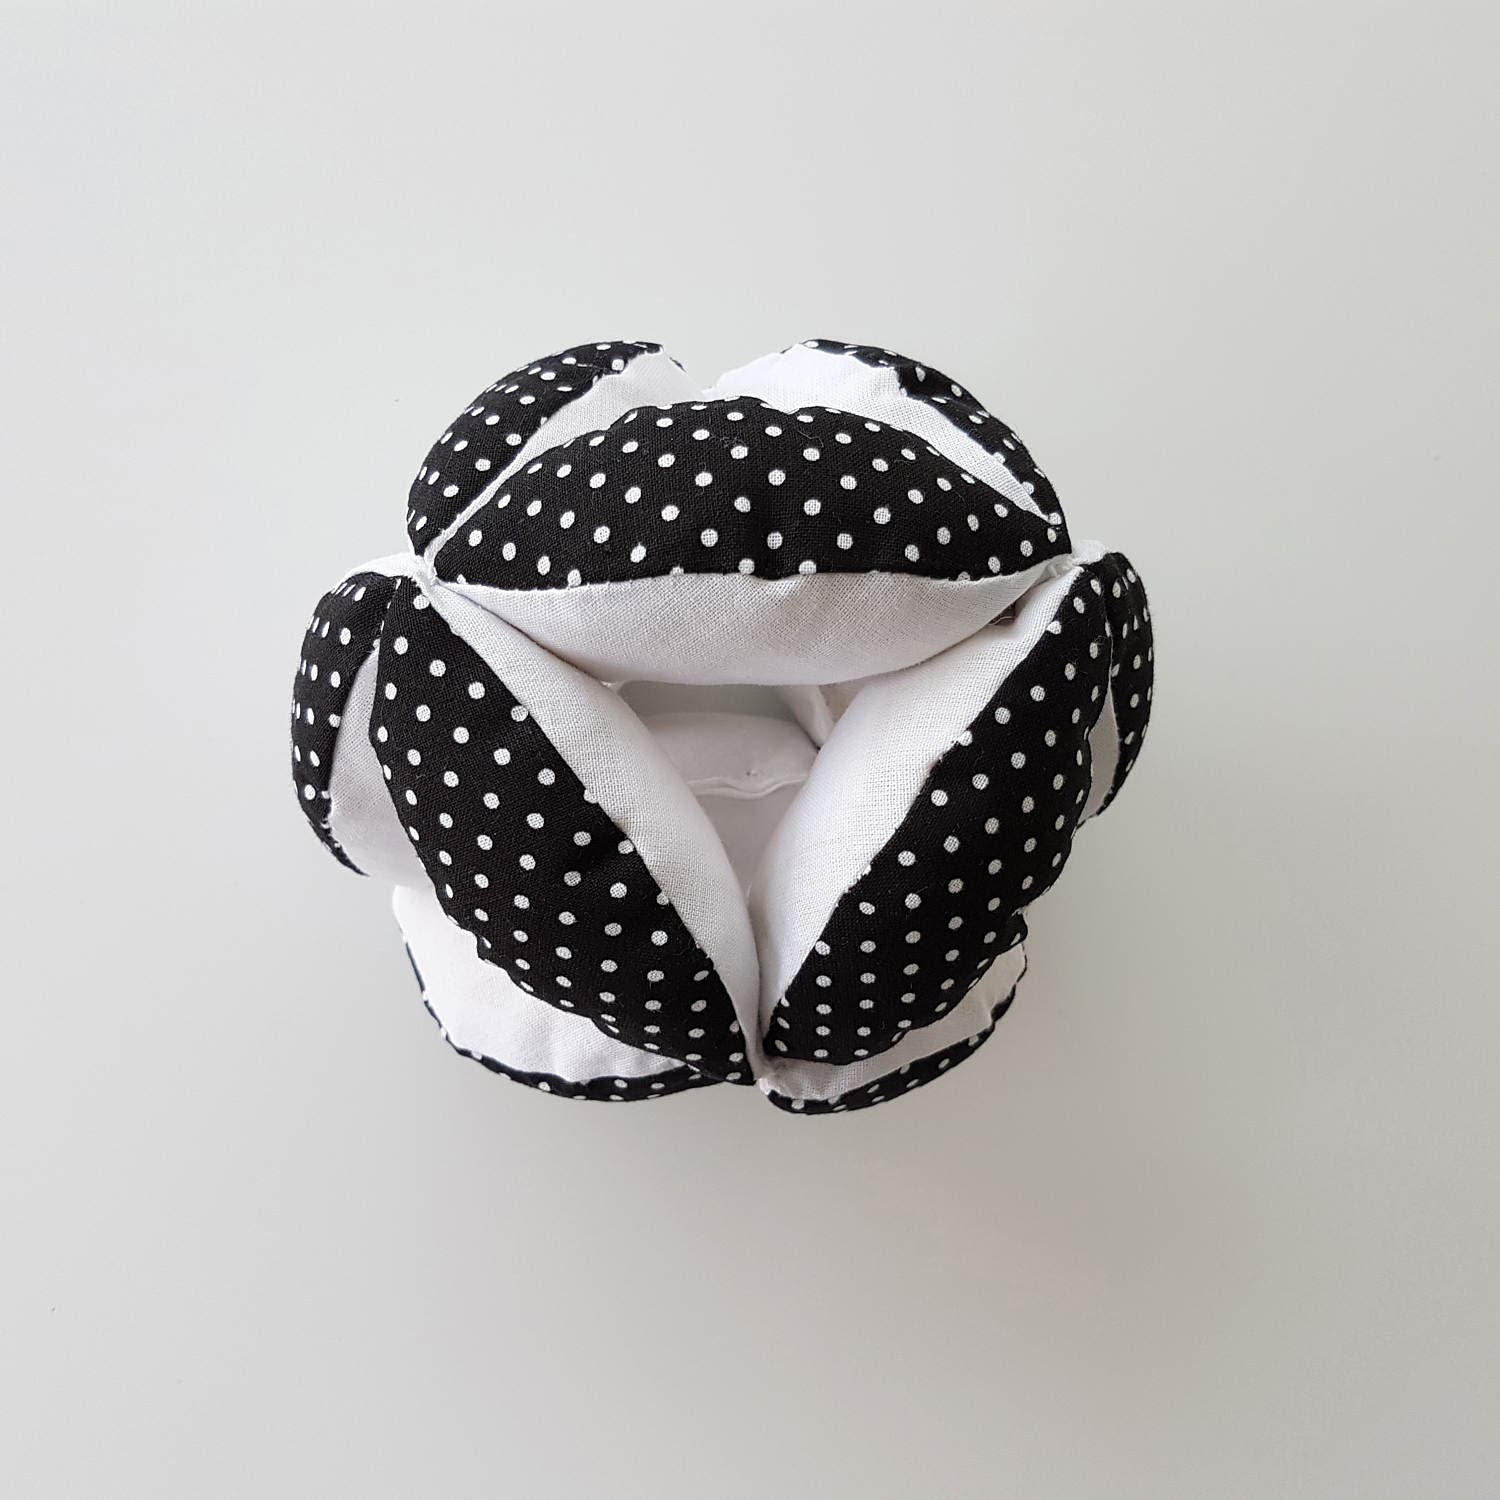 Monochrome Puzzle Ball Montessori Inspired, Clutch Ball, Sensory Baby Toy, Baby Grab Ball, Montessori Ball, Fabric Ball, Sensory Ball